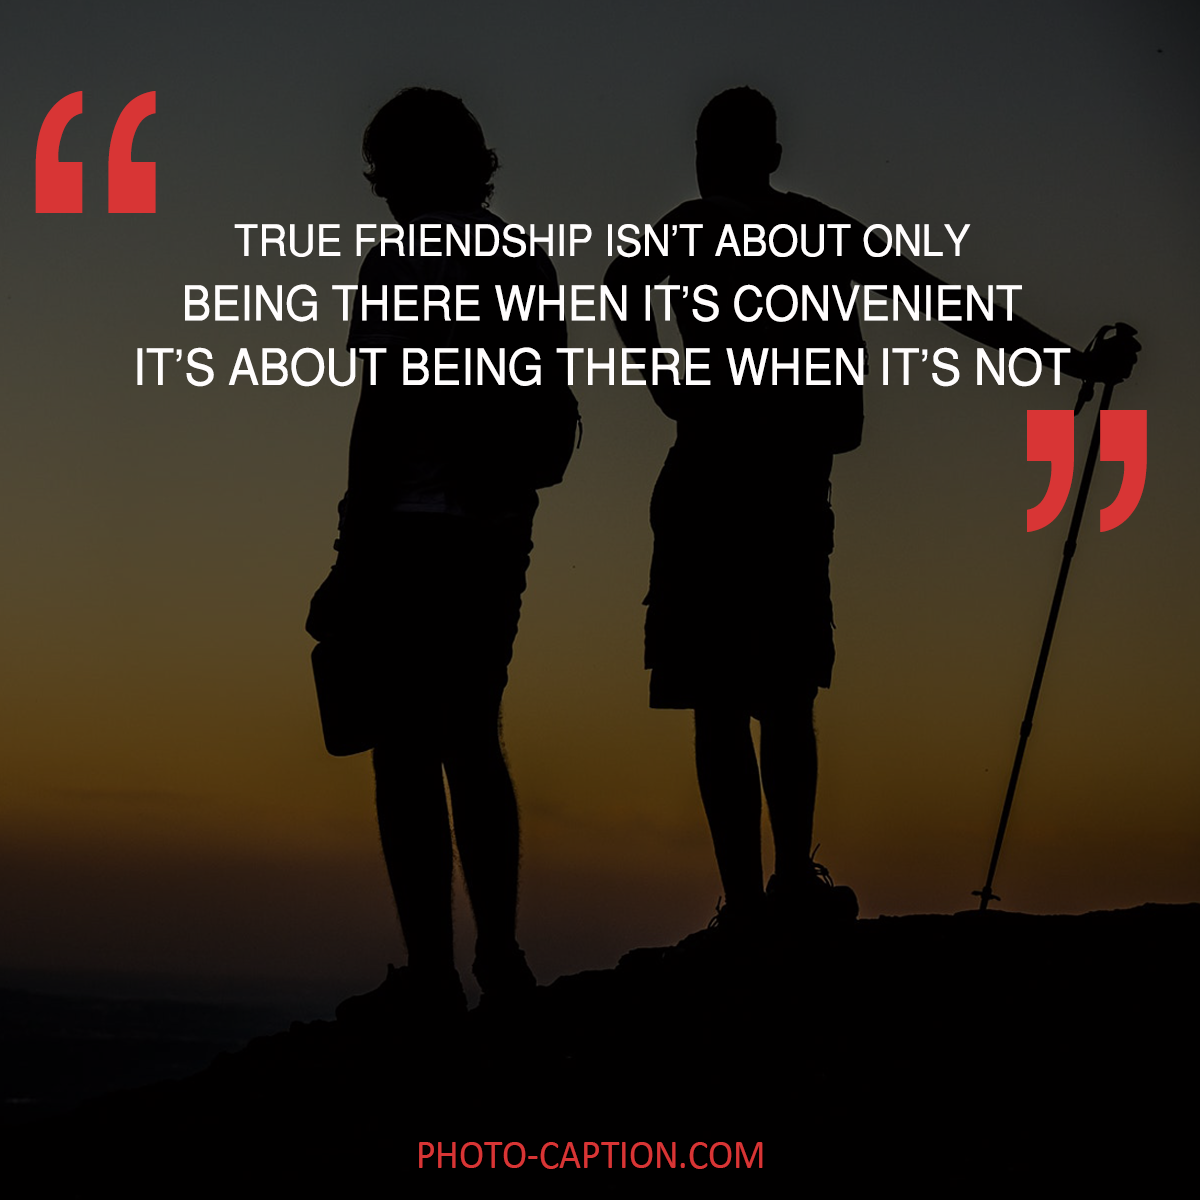 Pin by Photo-Caption on Best Friend | Caption for friends ...